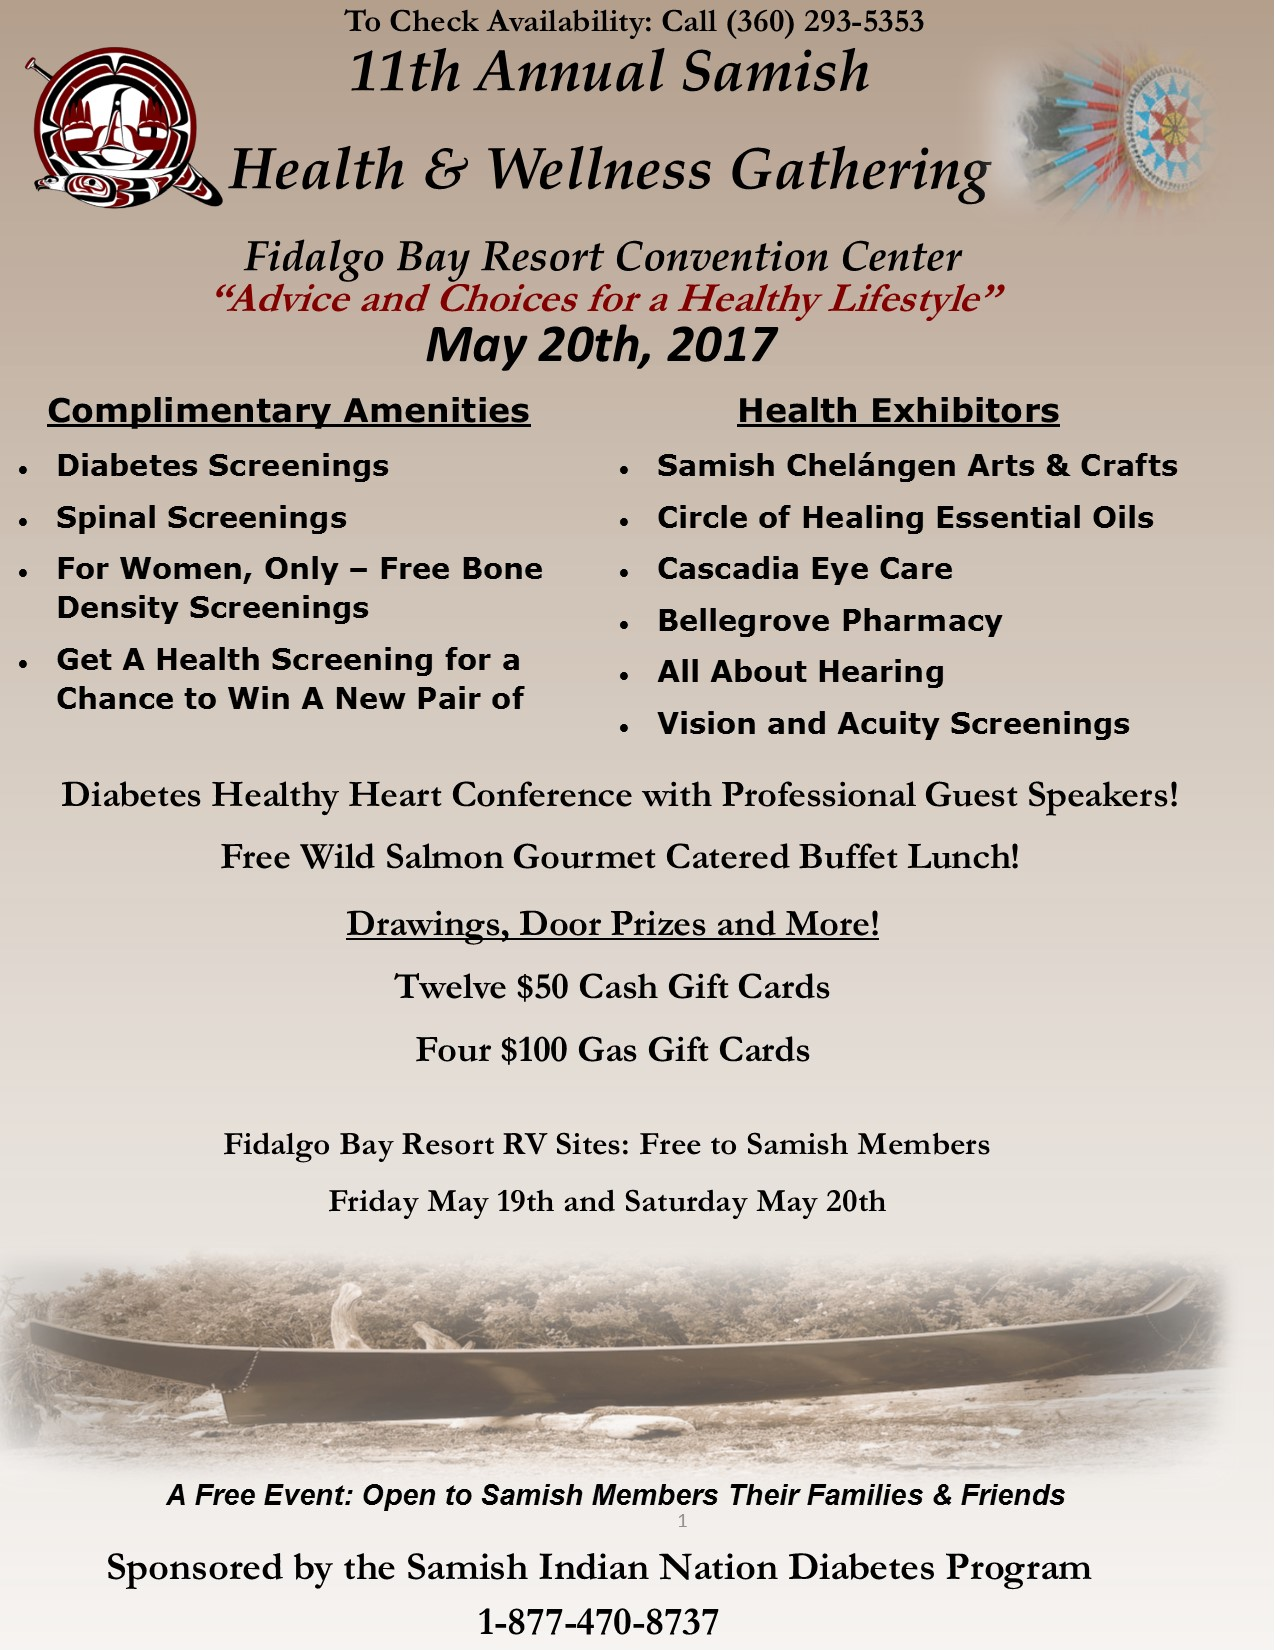 An advertisement flyer listing for the 11th Annual Samish Health & Wellness Gathering at Fidalgo Bay Resort.